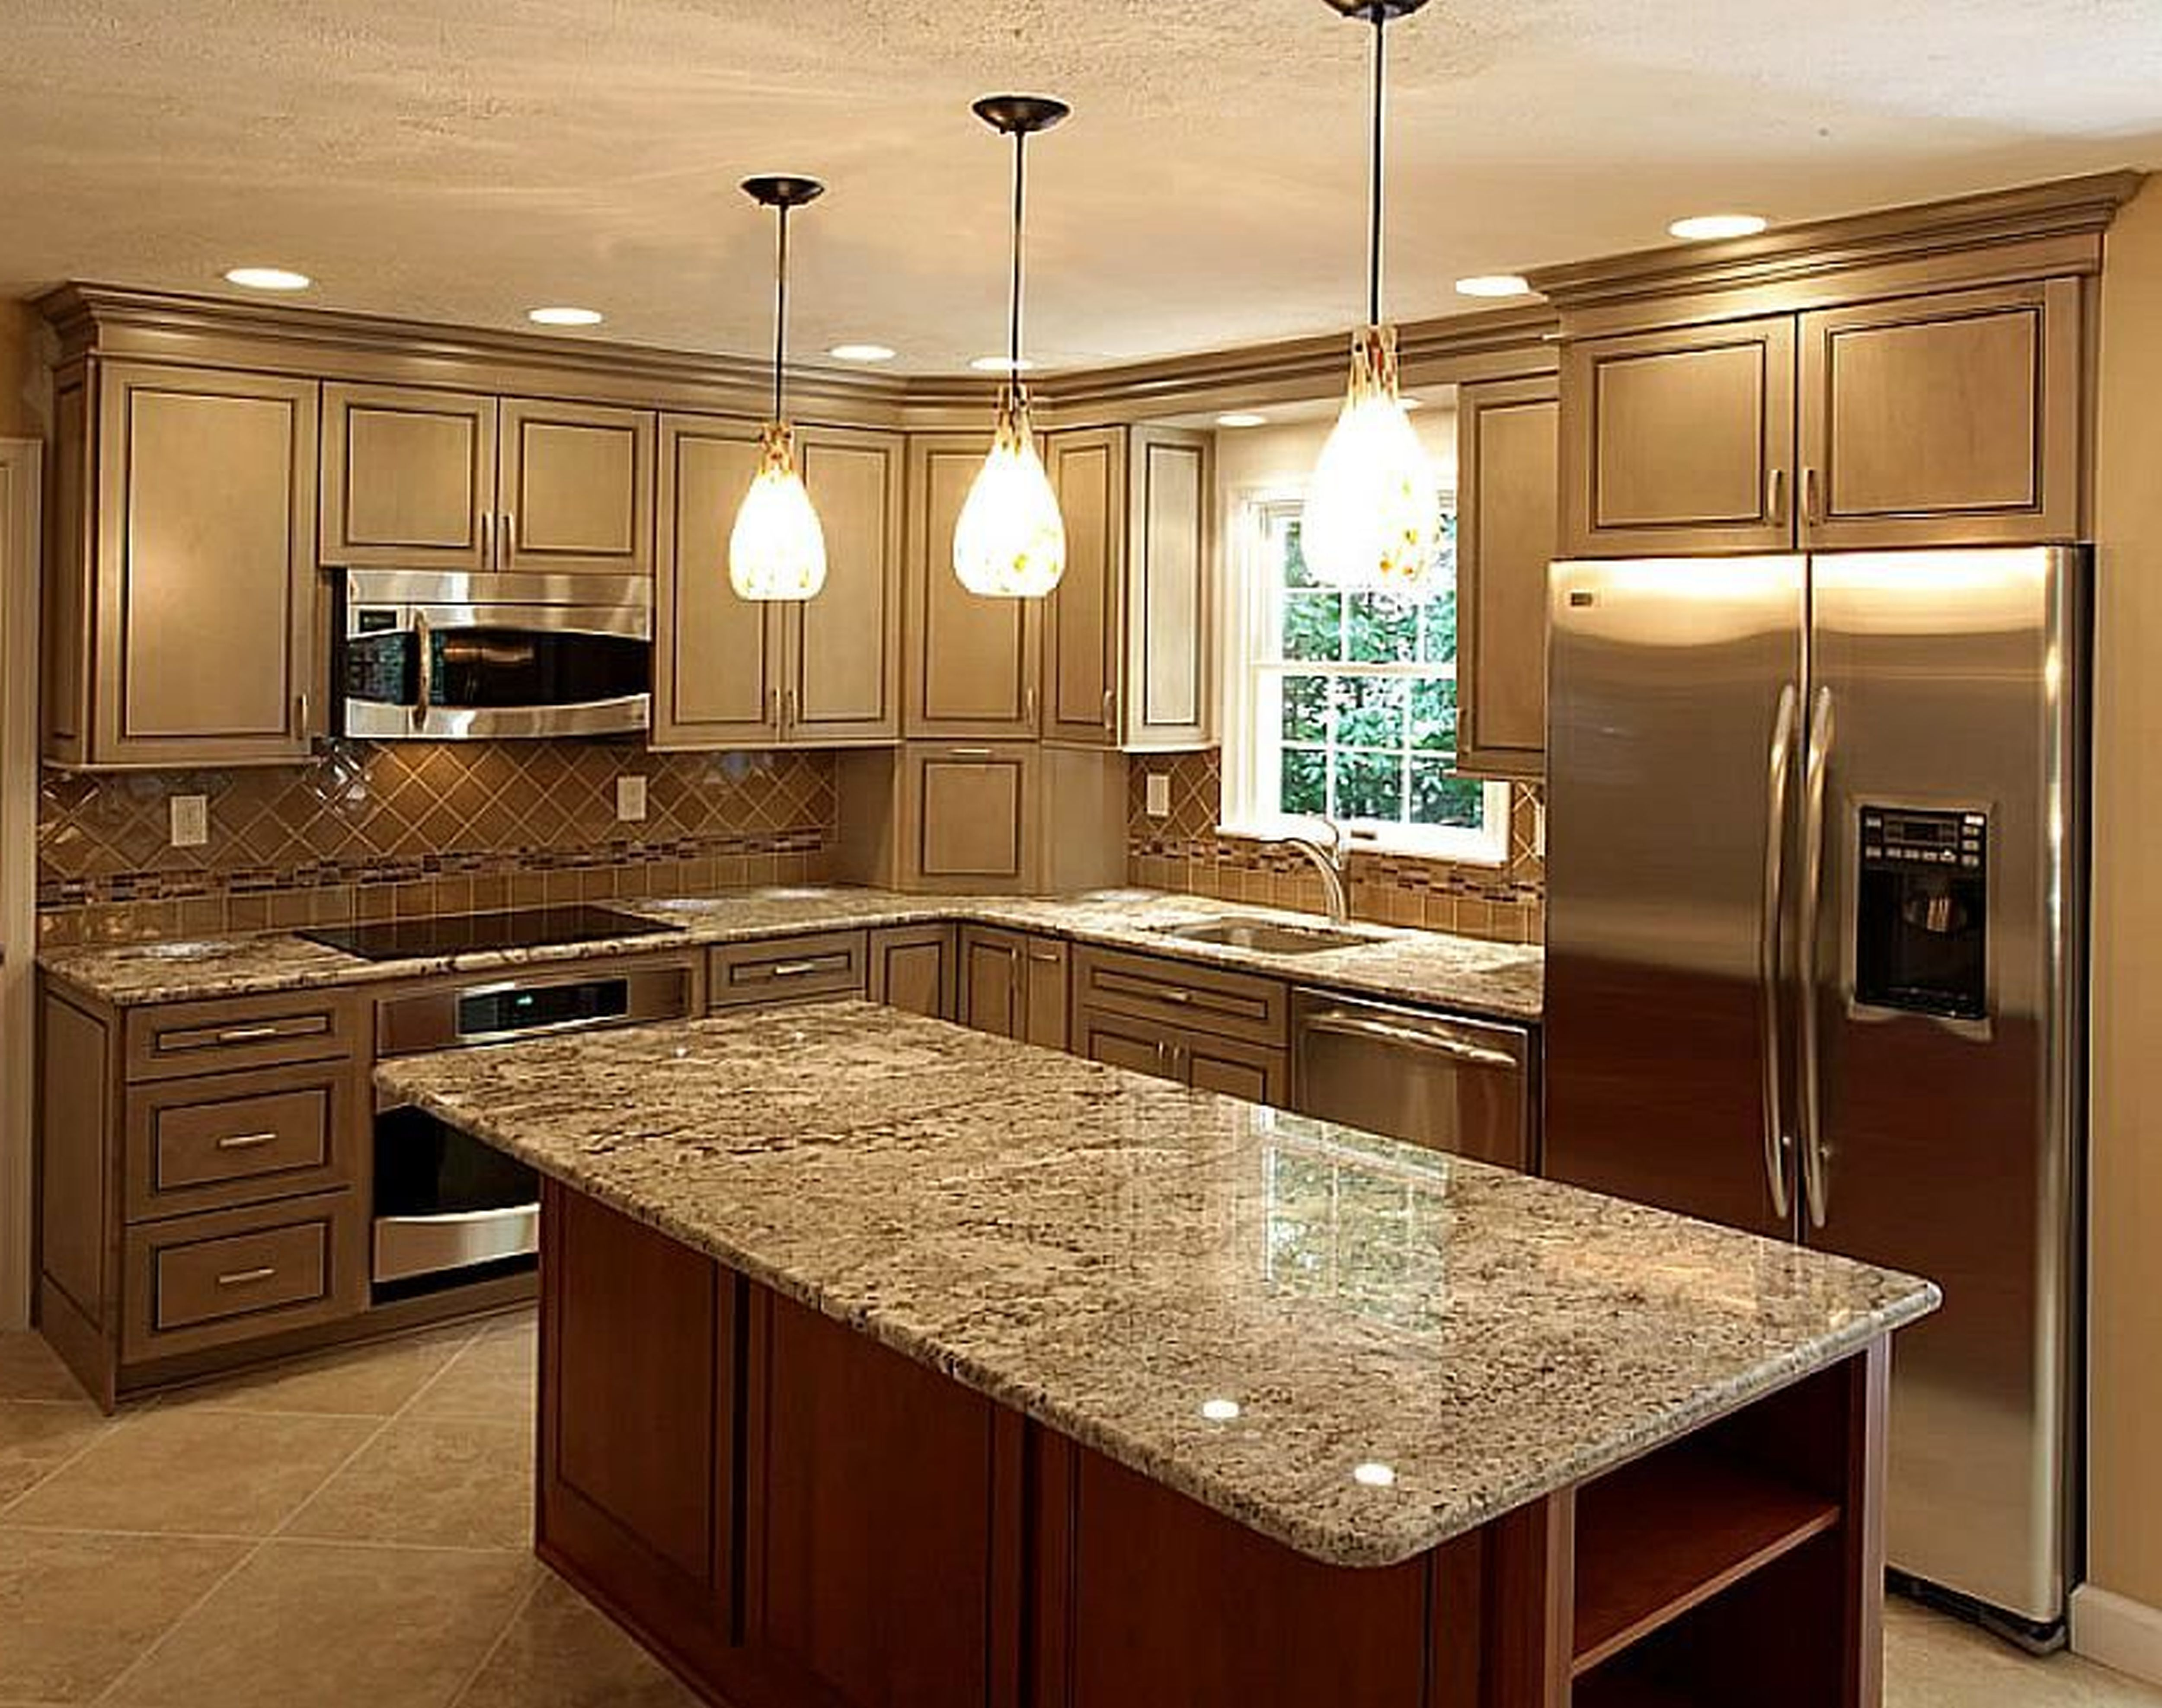 Kitchen Bath Countertop Installation Photos In Brevard Indian River Fl  Glass Kitchen Countertops Pros And Cons